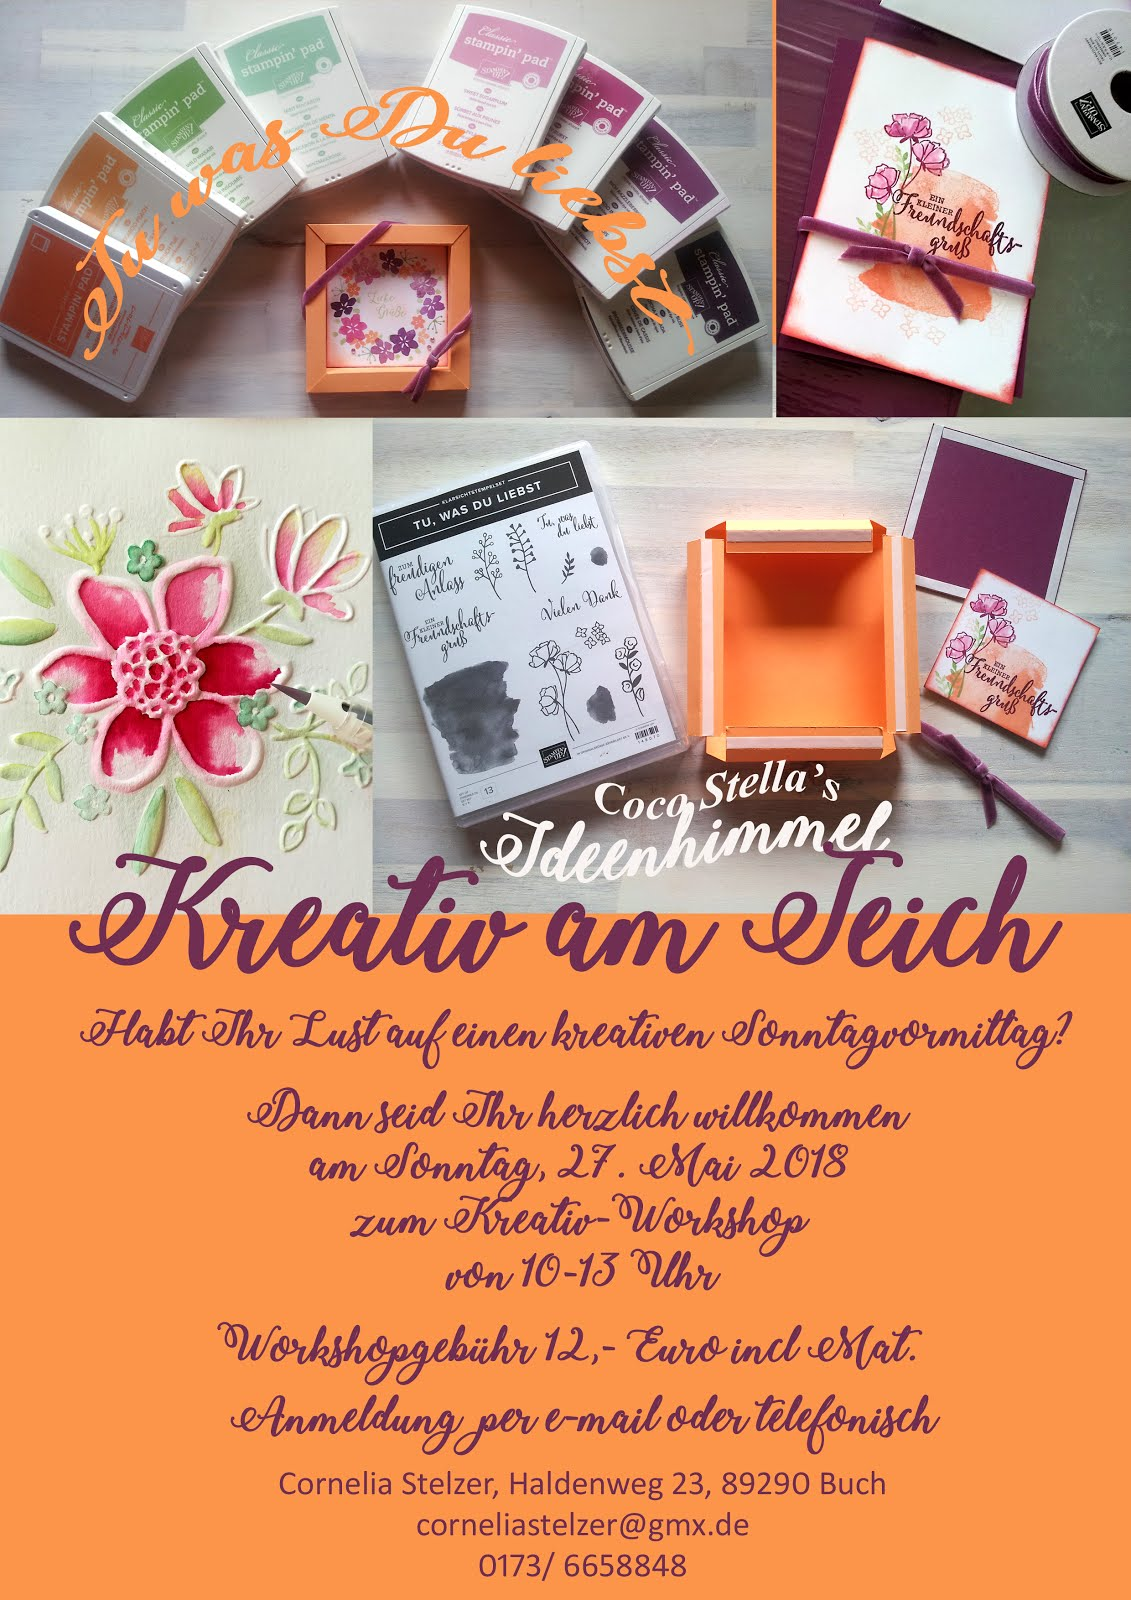 Kreativ-Workshop am Teich